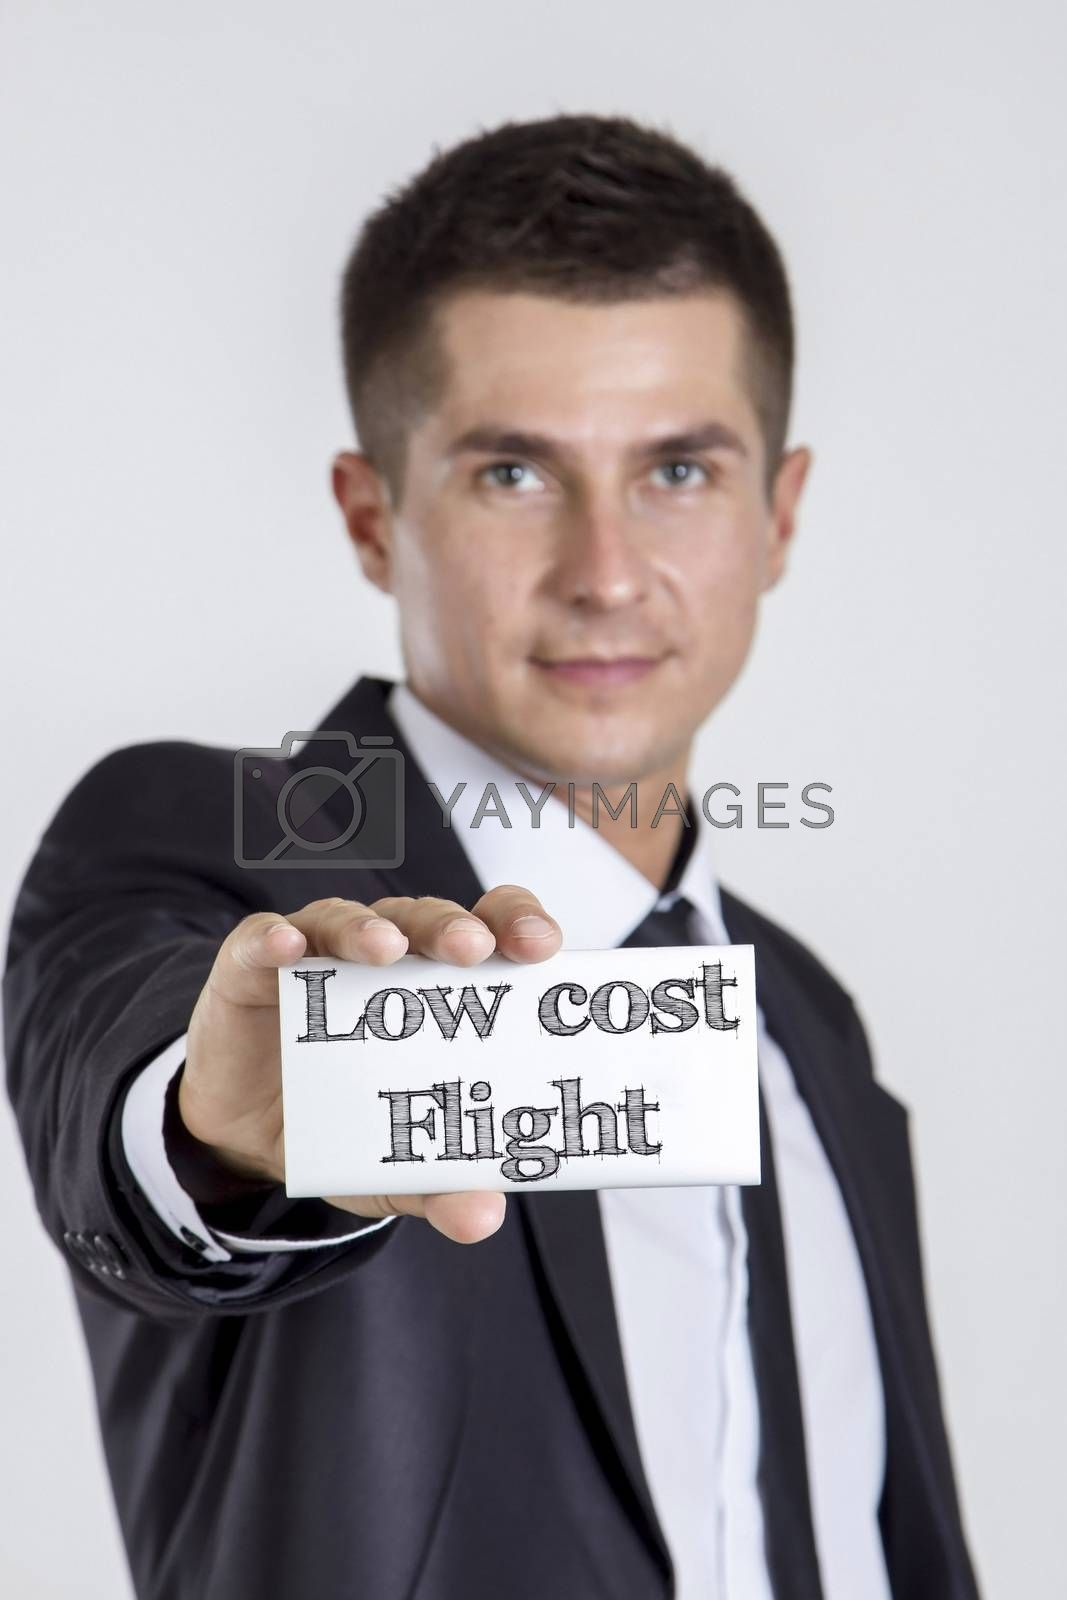 Low cost Flight - Young businessman holding a white card with text - vertical image